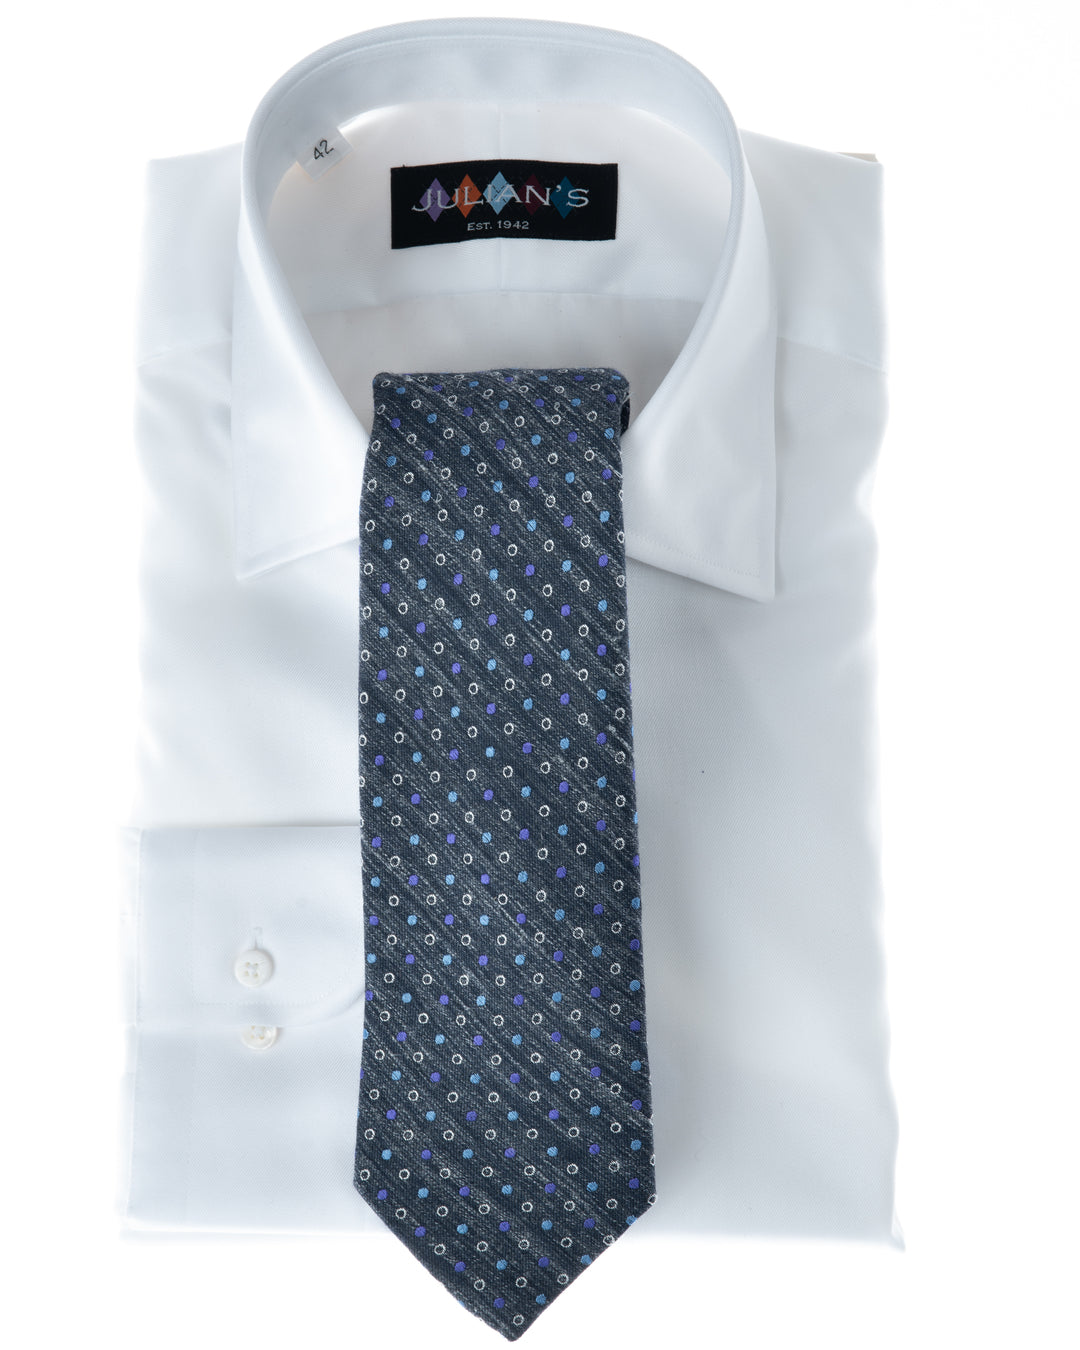 Charcoal, Purple, Carolina Blue and Cream Dots Tie